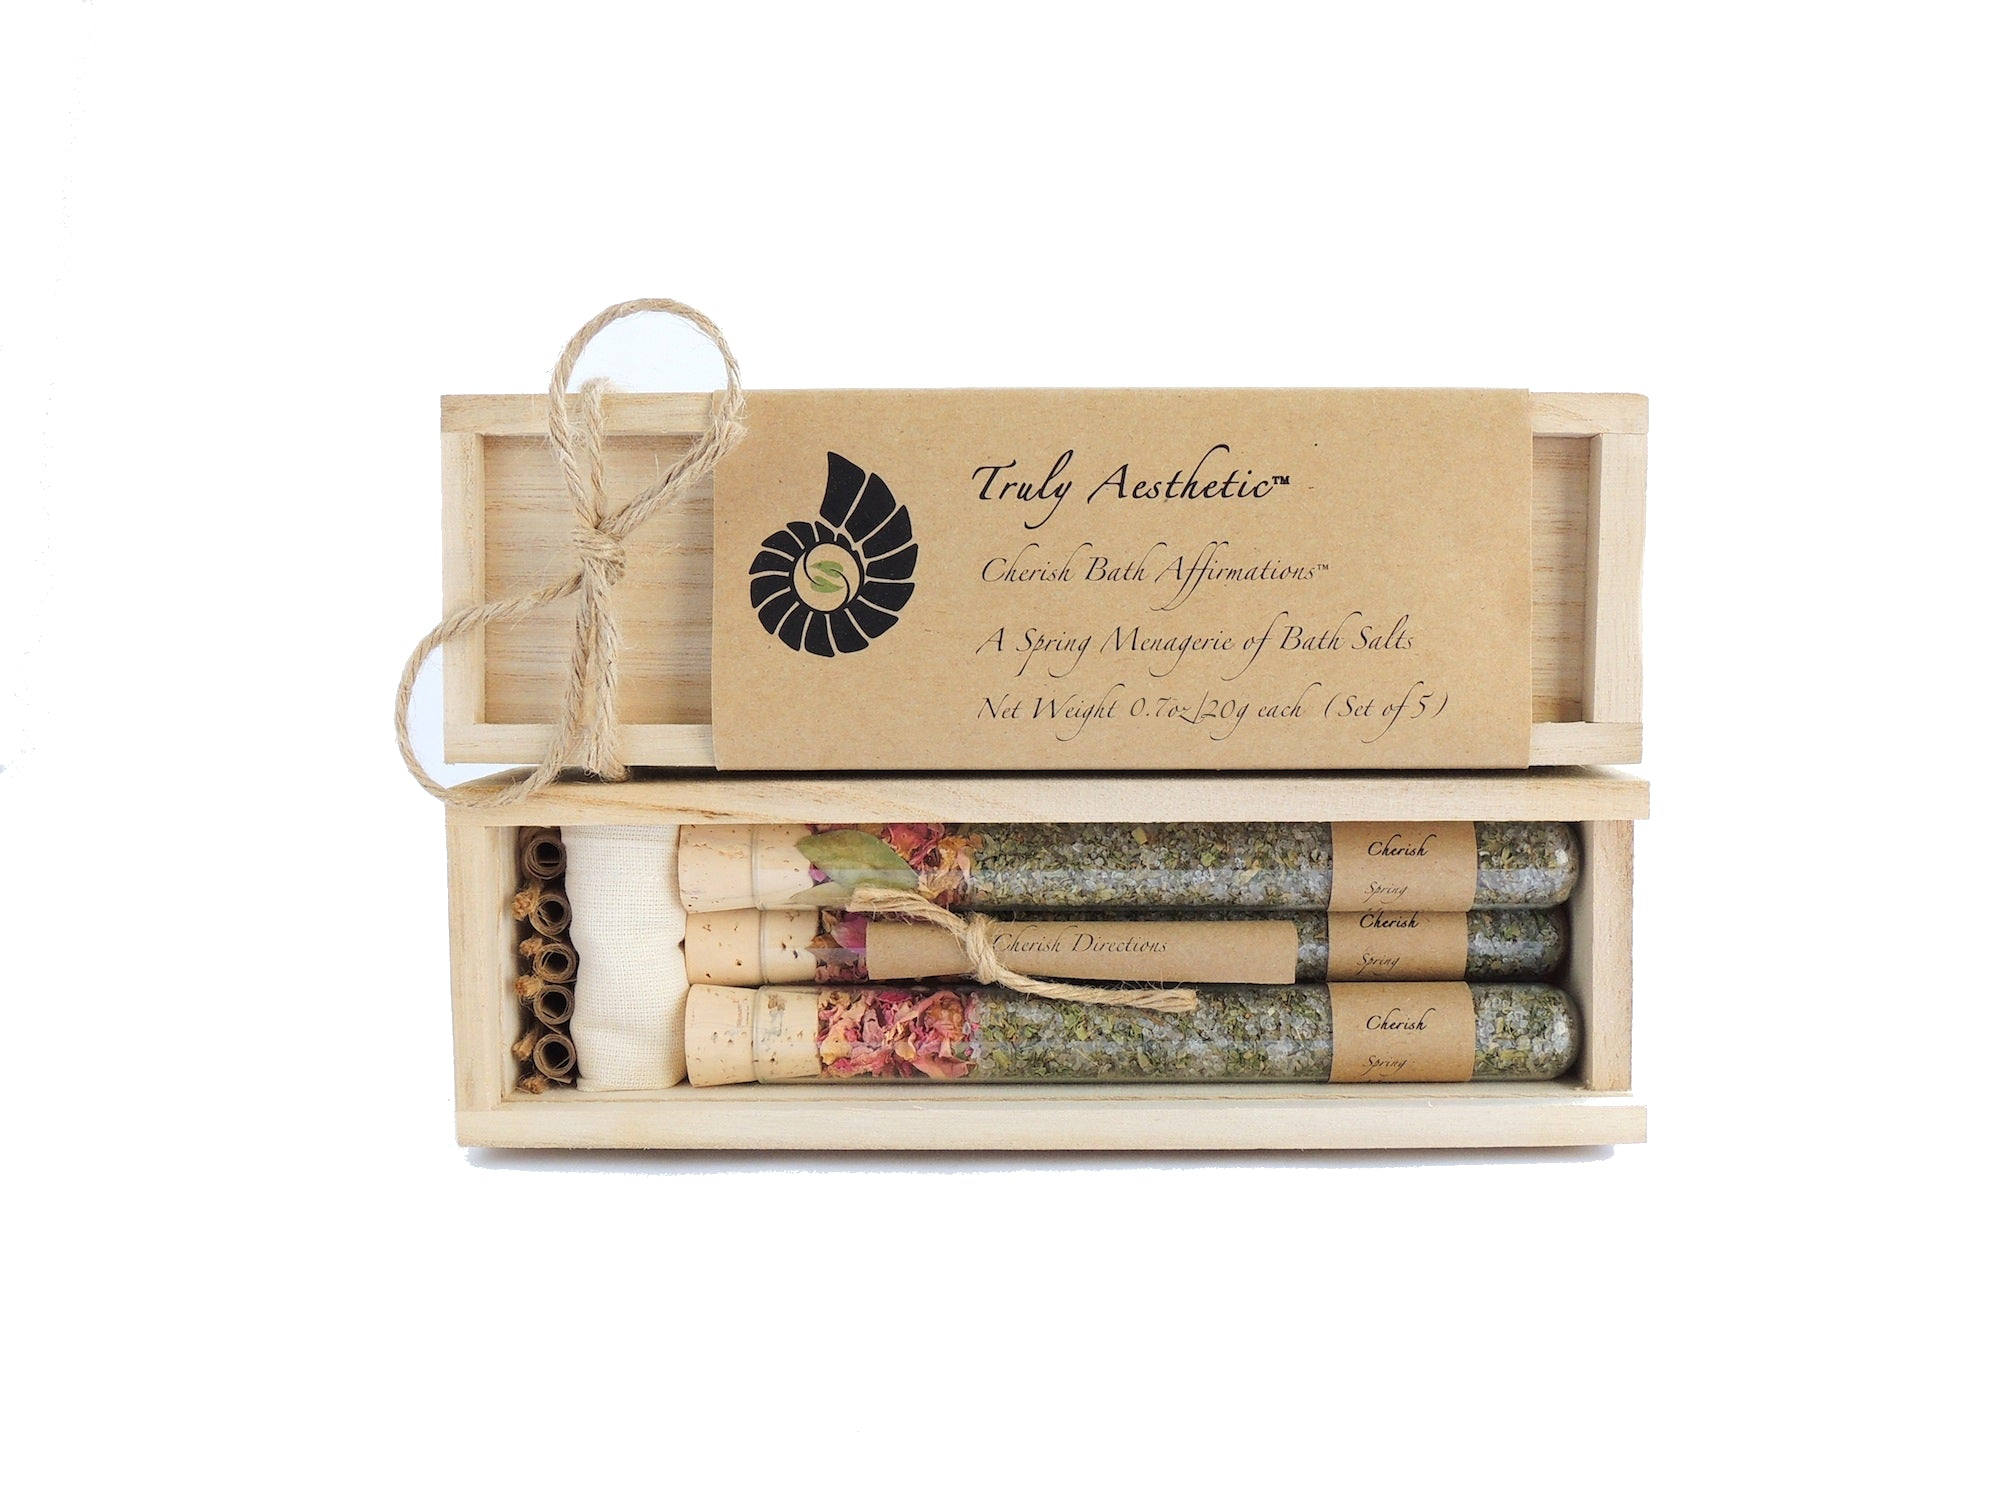 Truly Aesthetic Cherish Spring Petite Bath Affirmations Bath Salts Gift Box Set Packaging